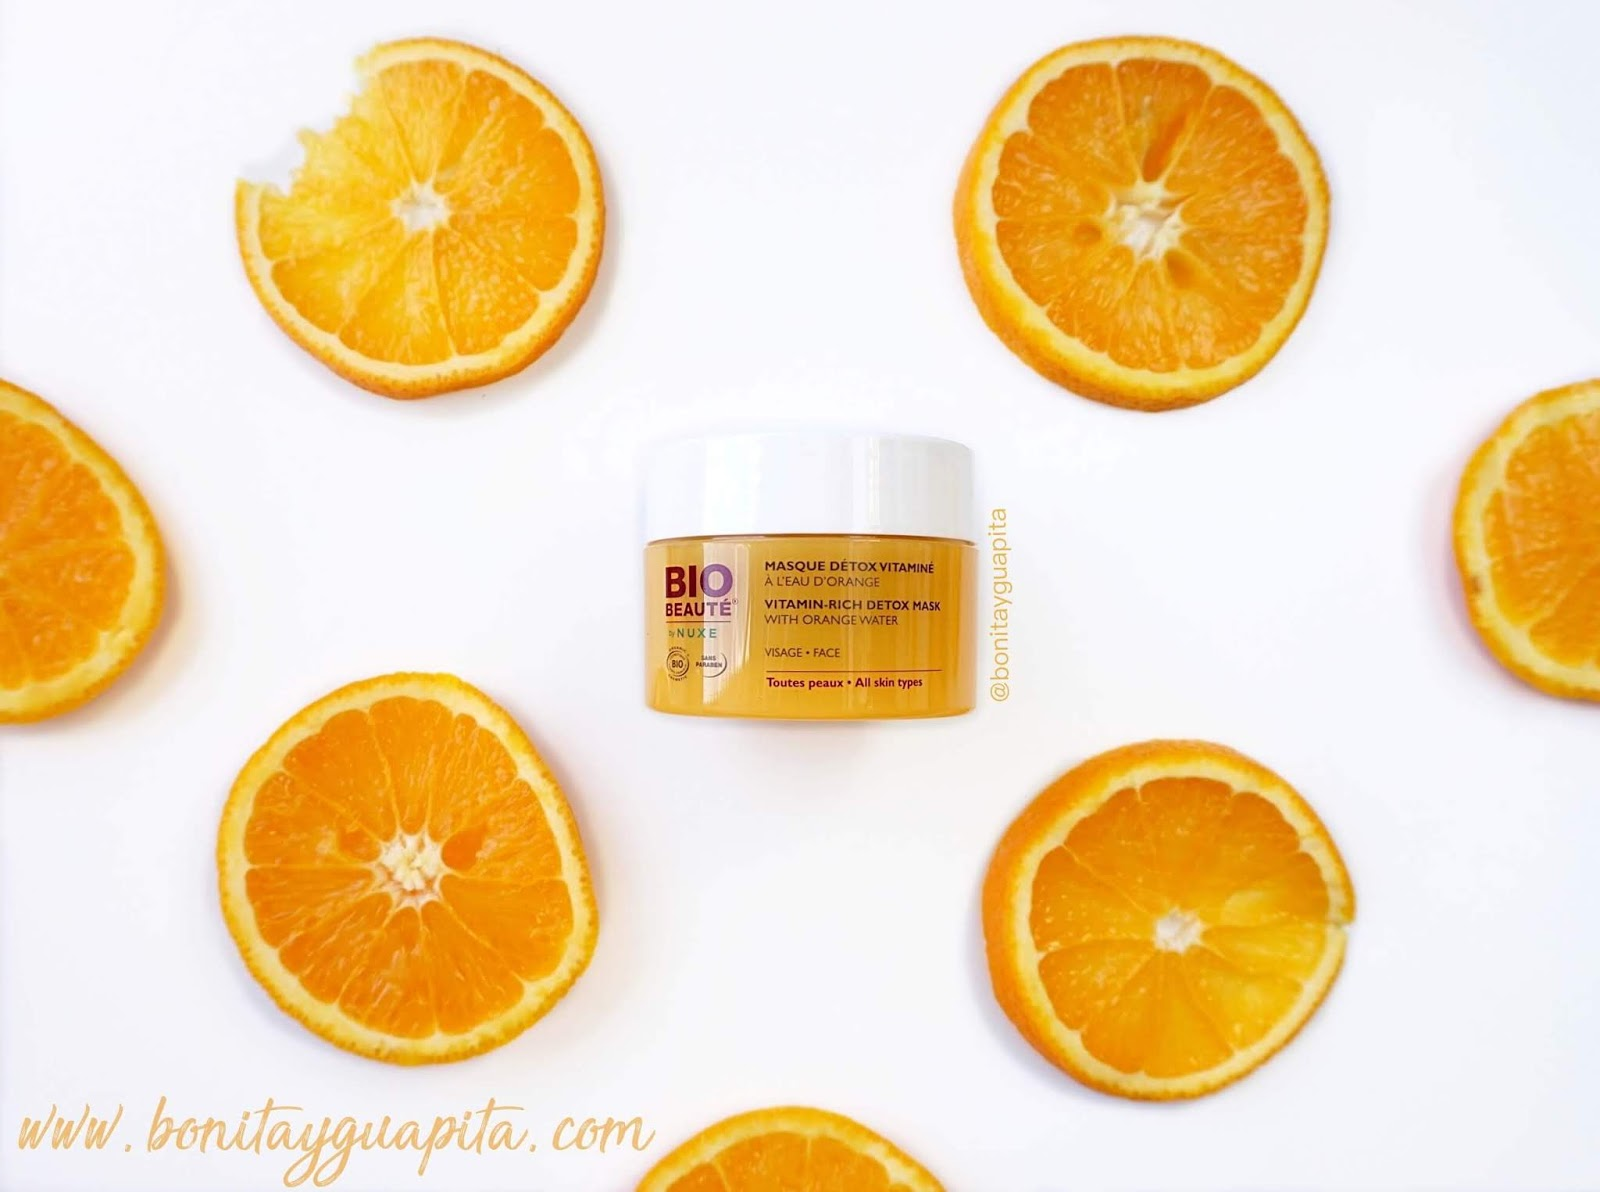 Mascarilla Detox Vitaminada BIO BEAUTE by NUXE